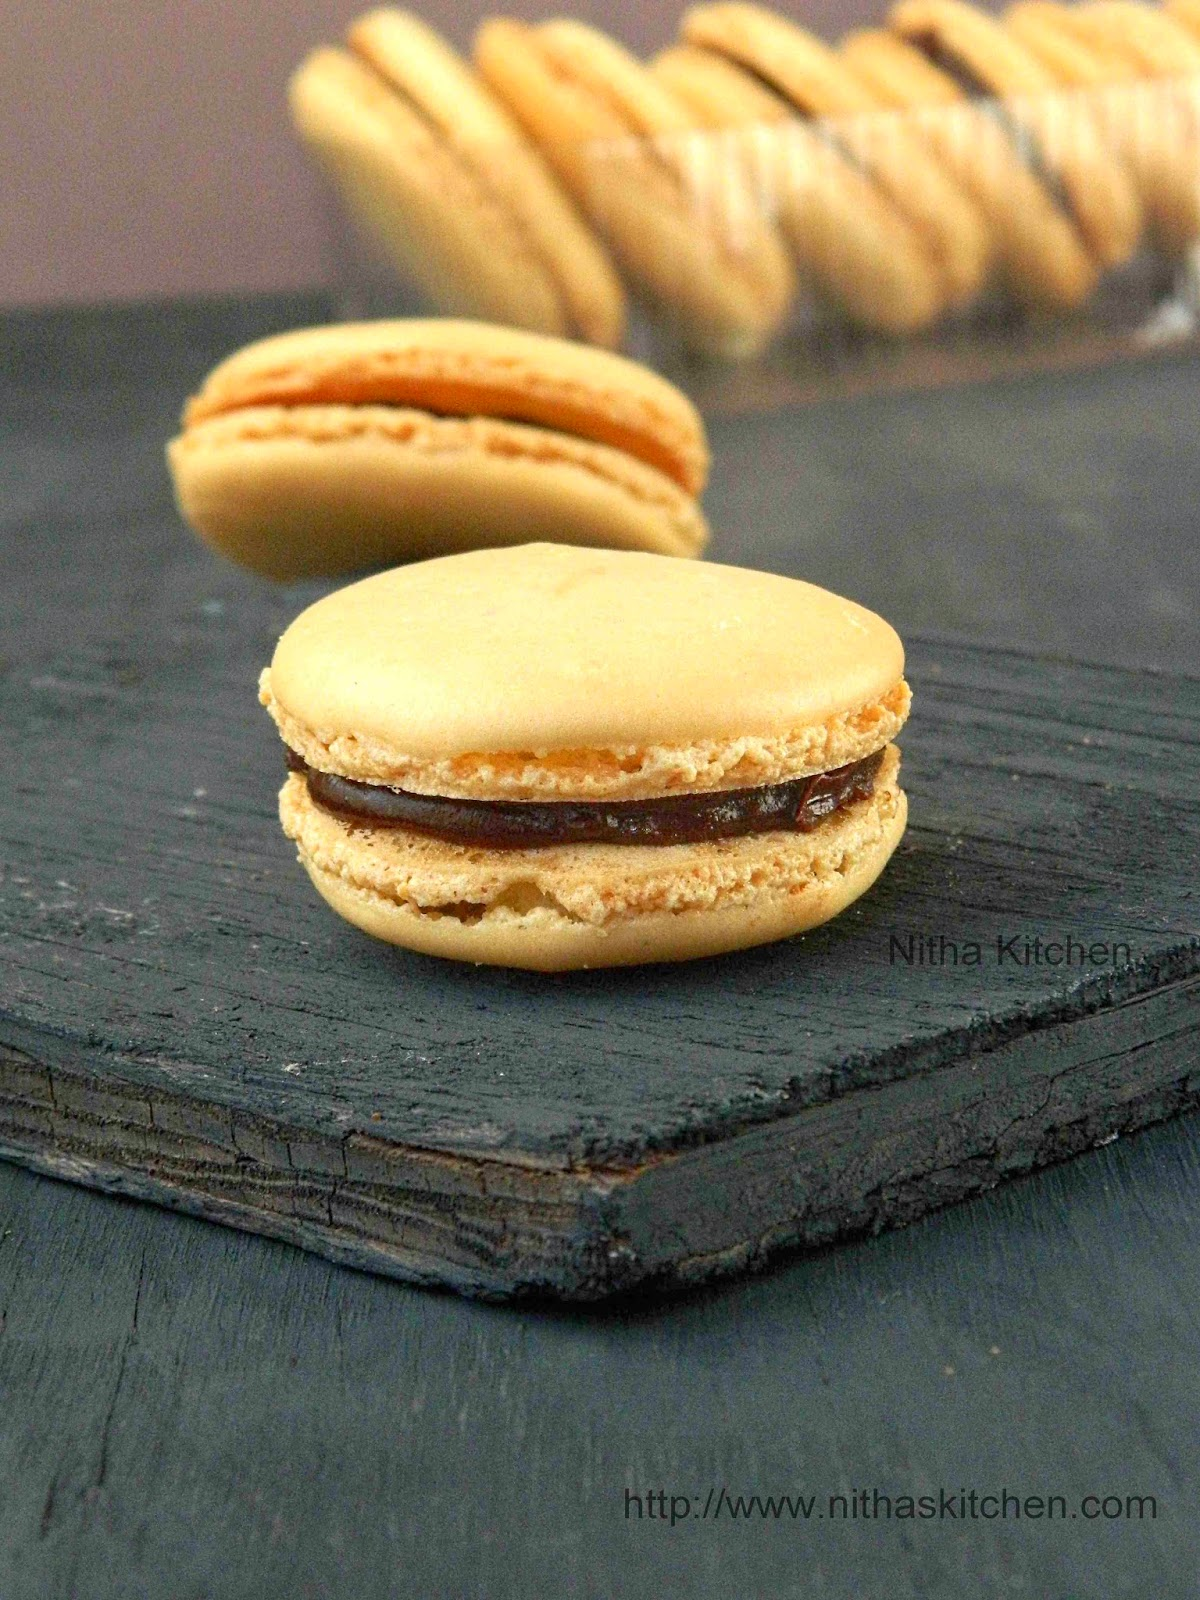 French Macaron | Macaron Recipe for Beginners with Troubleshooting Tips